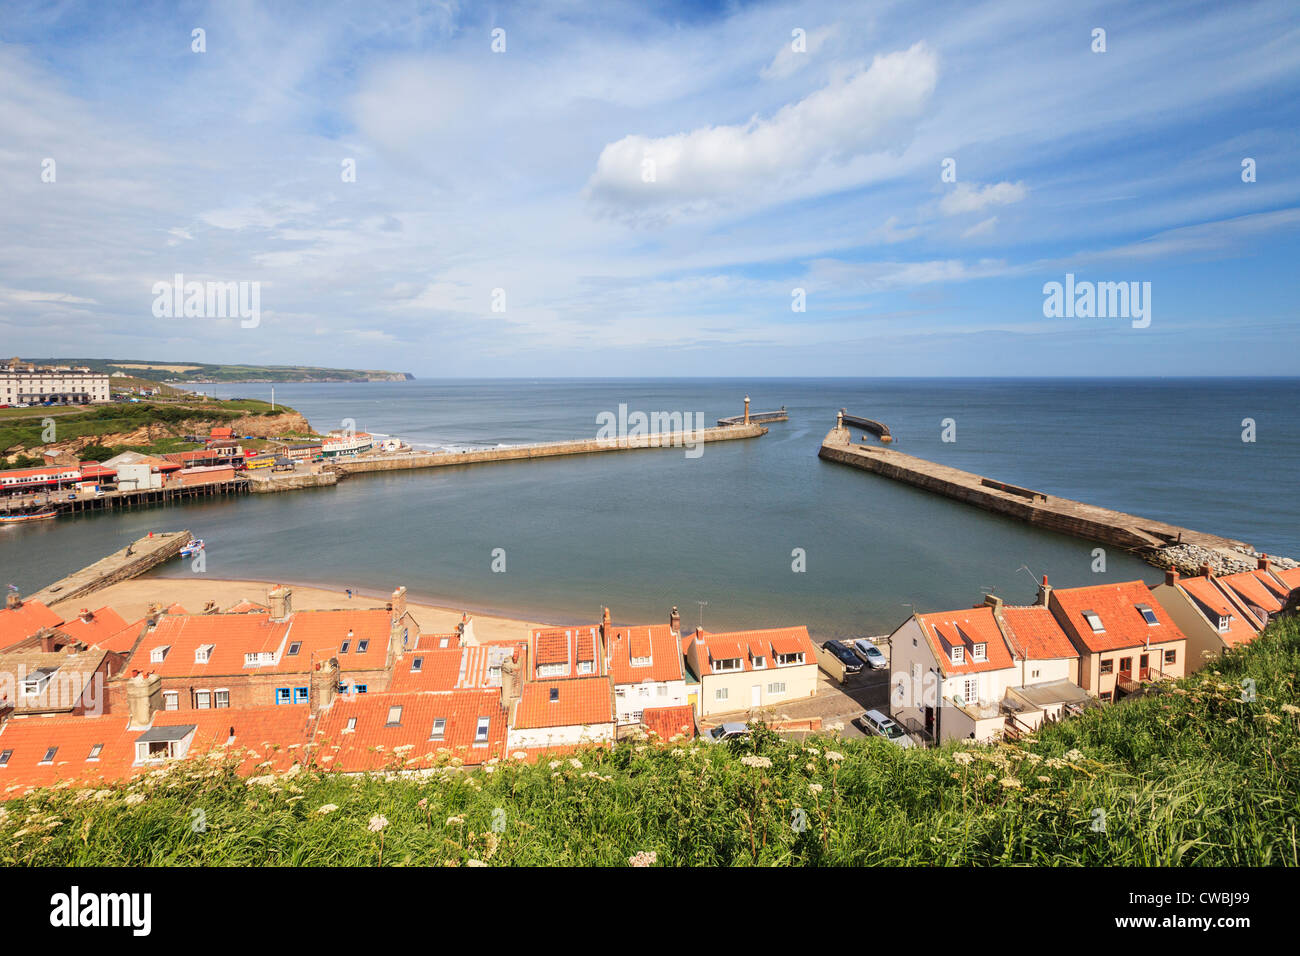 View across the harbour mouth at Whitby, North Yorkshire, on a Spring evening. - Stock Image